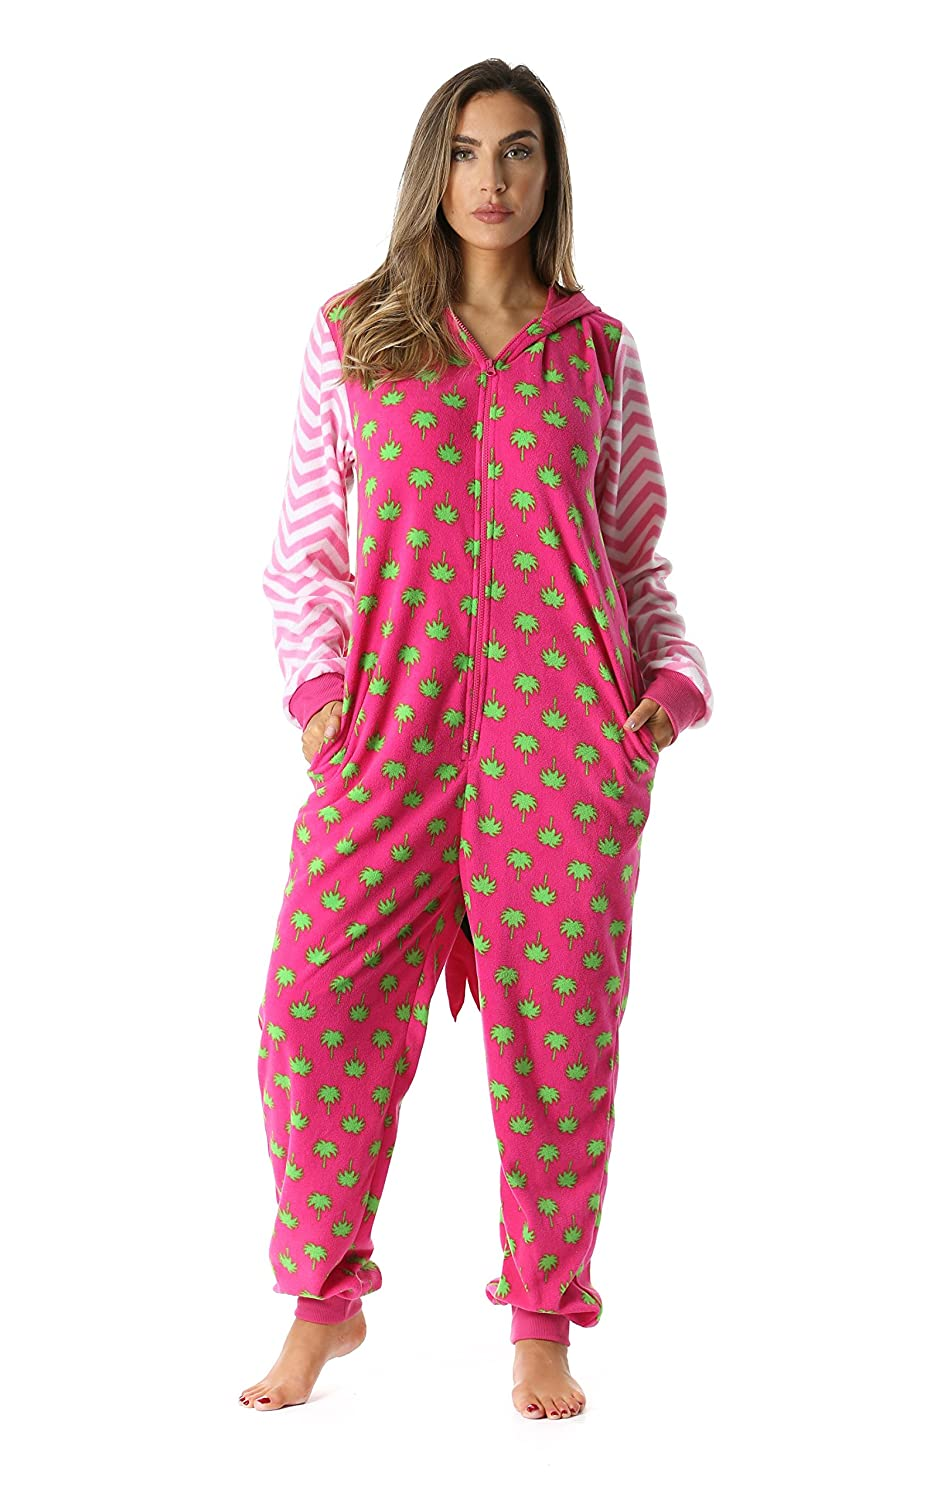 Just Love Parrot and Flamingo Adult Onesie Pajamas